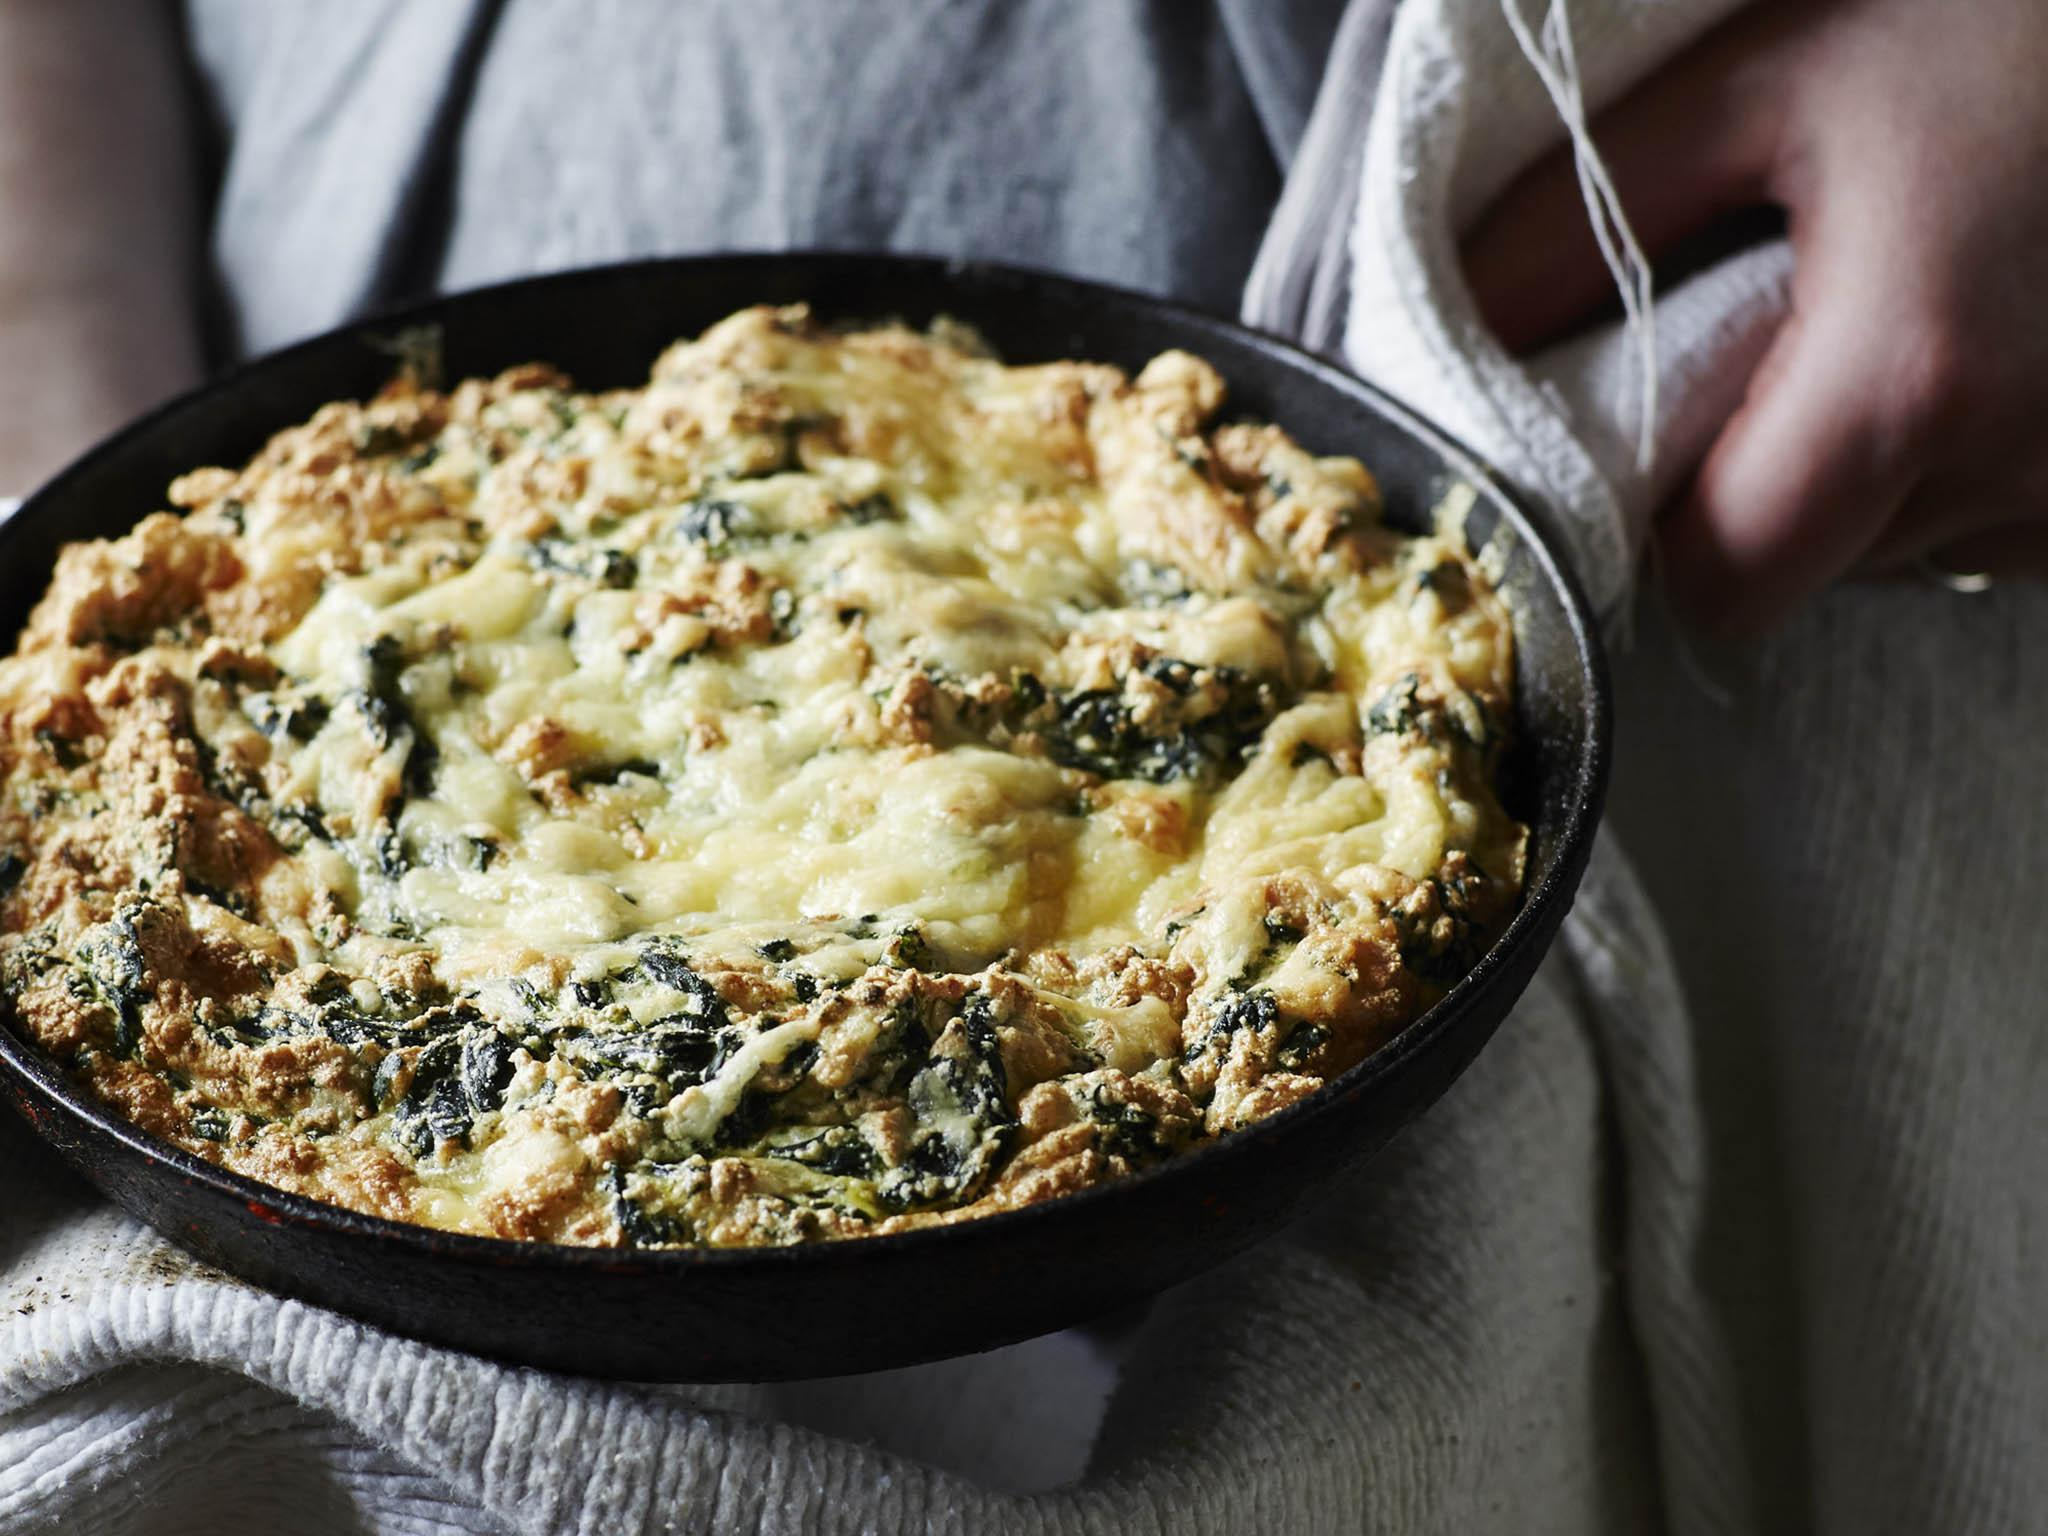 How to make frying-pan spinach soufflé 1